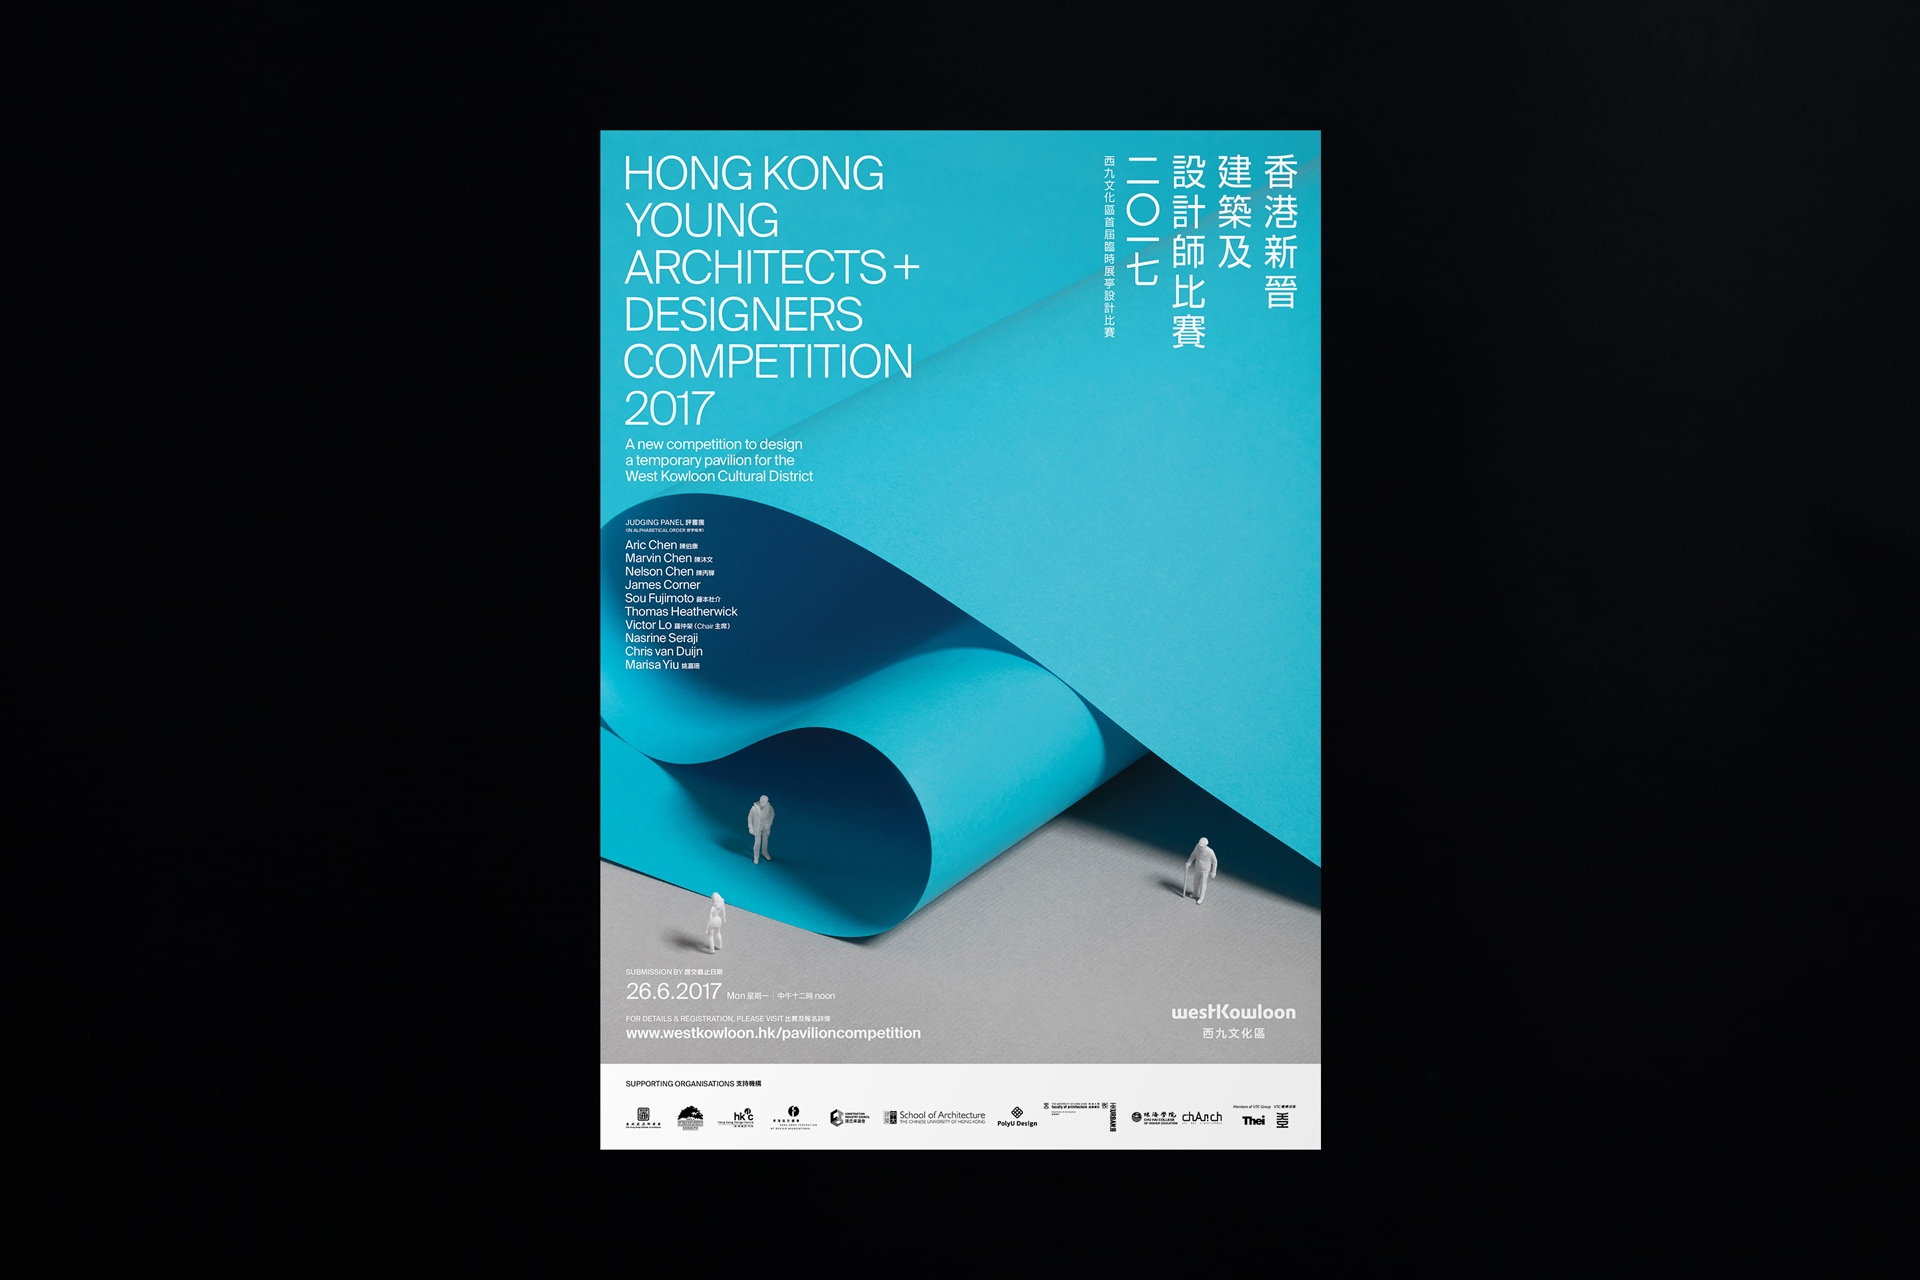 hong-kong-young-architects-designers-competition-2017_03